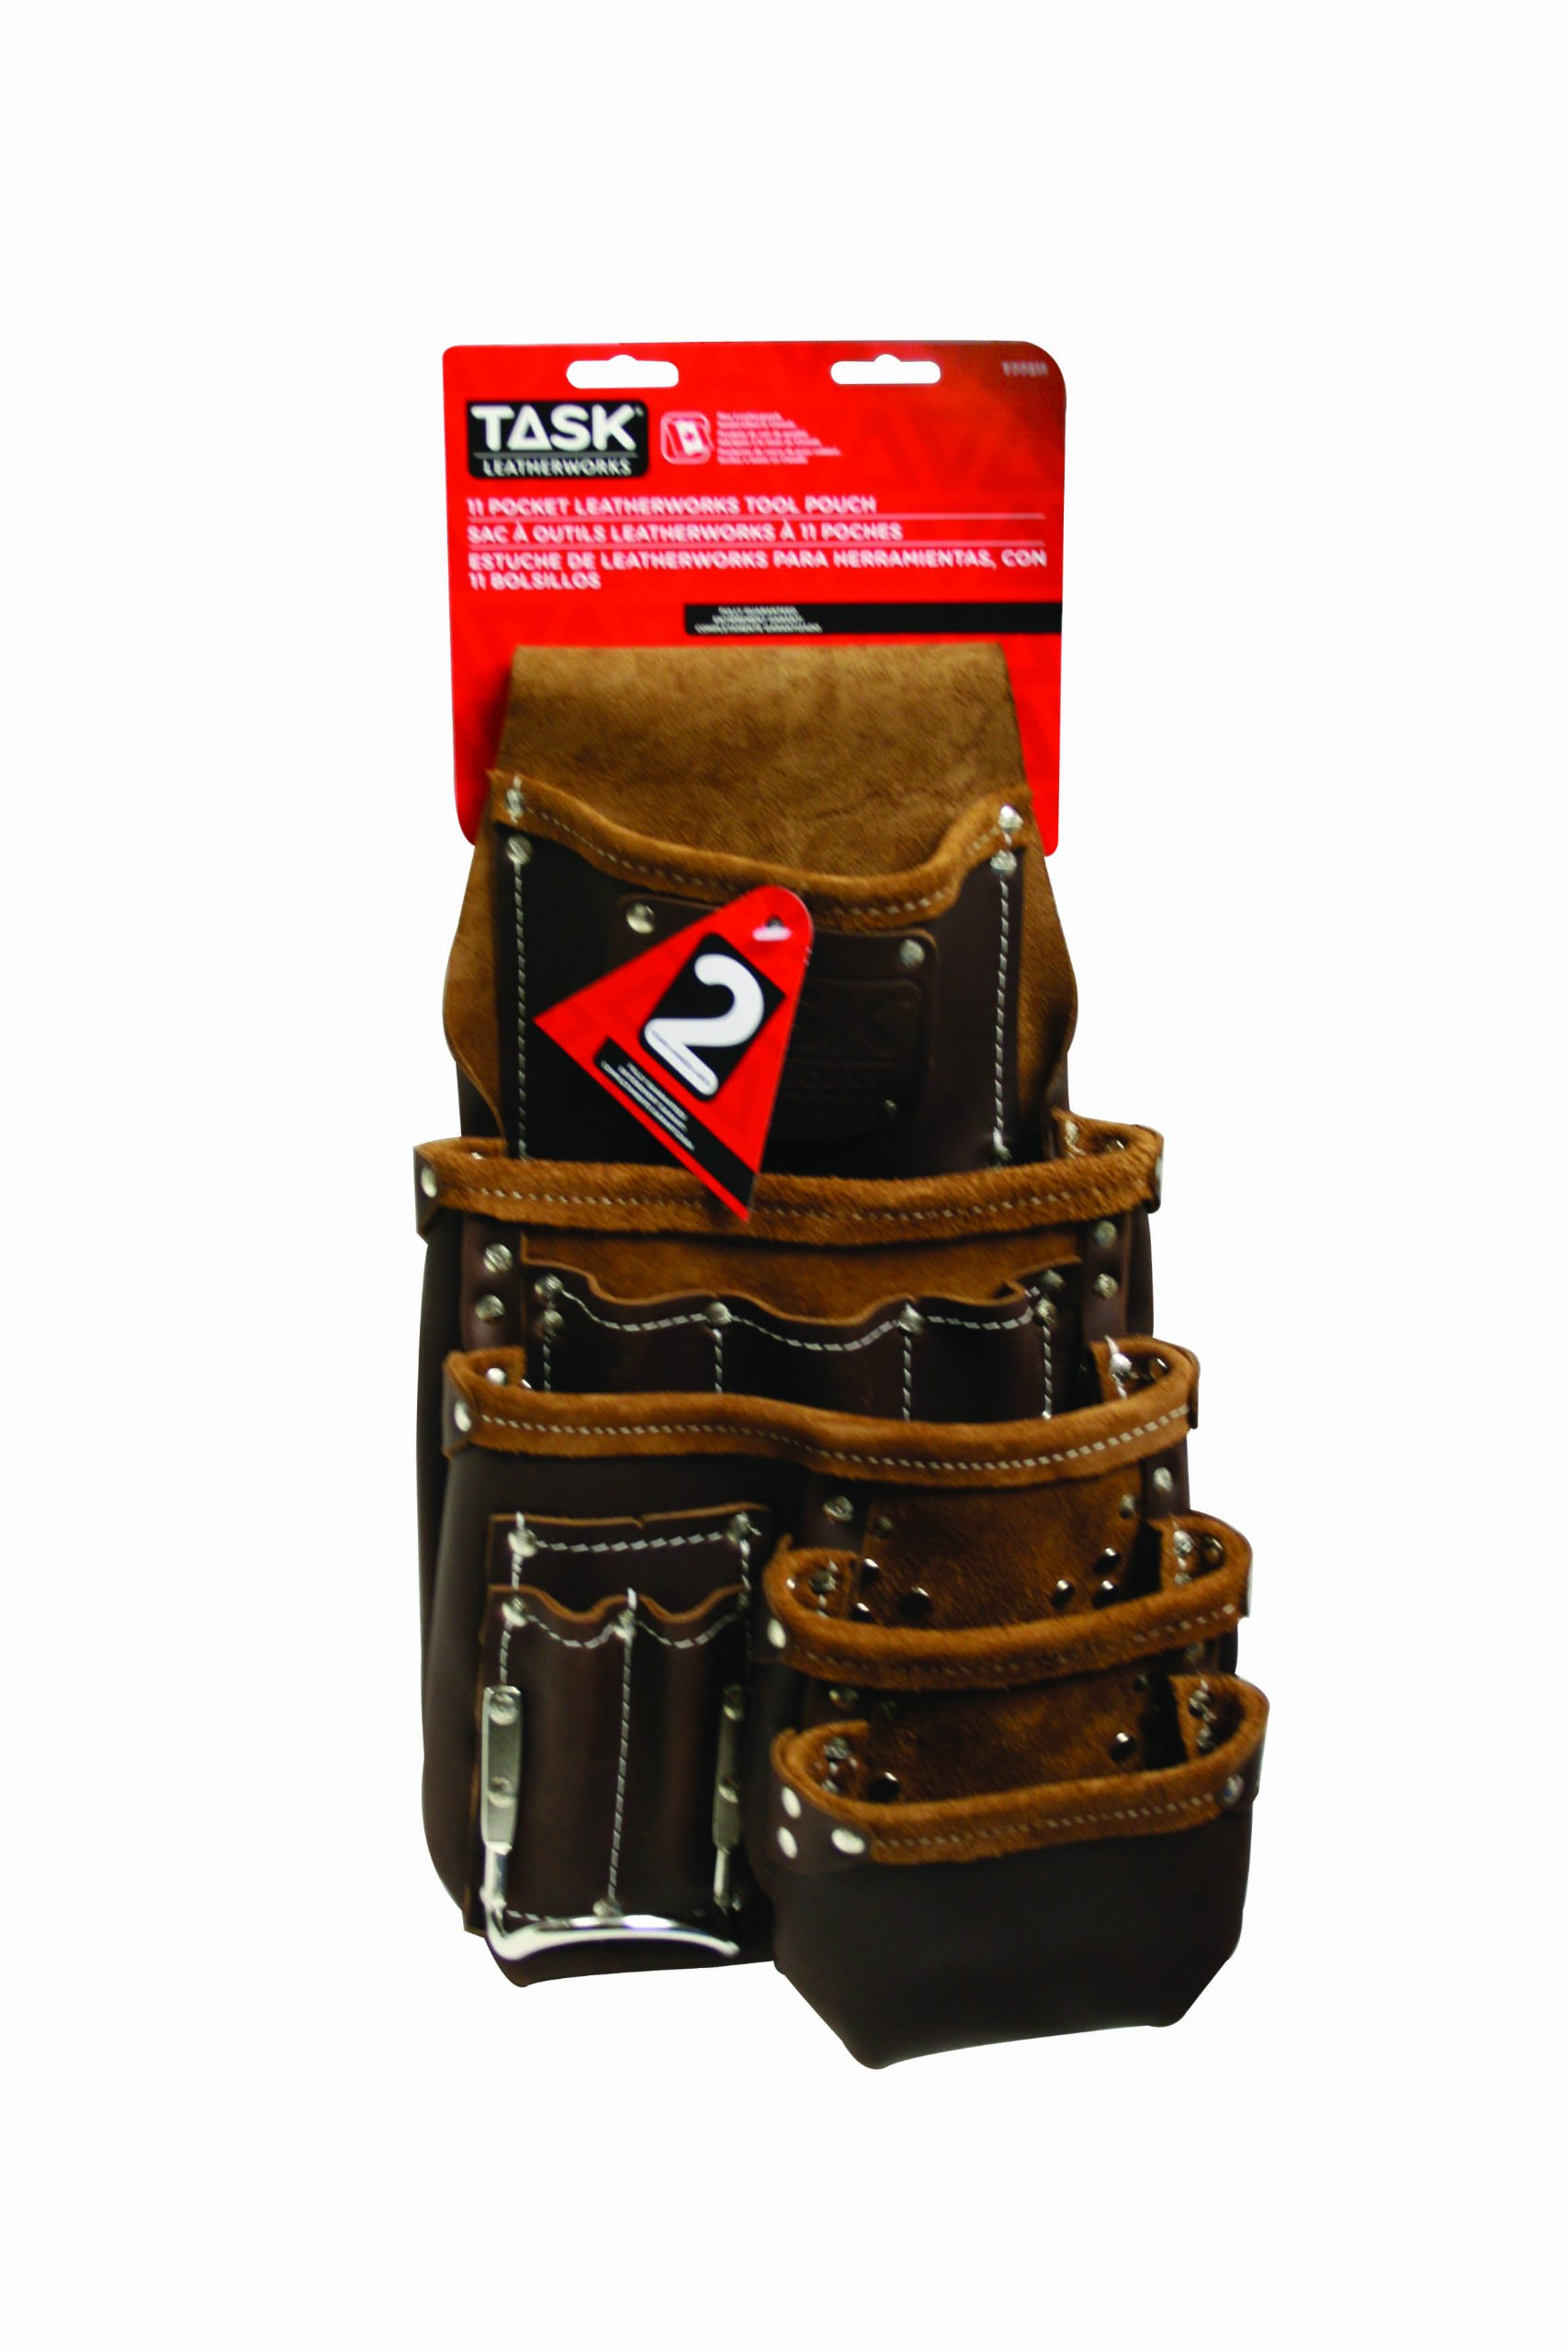 Task Tools T77311 Leather Tool Pouch, 11-Pocket